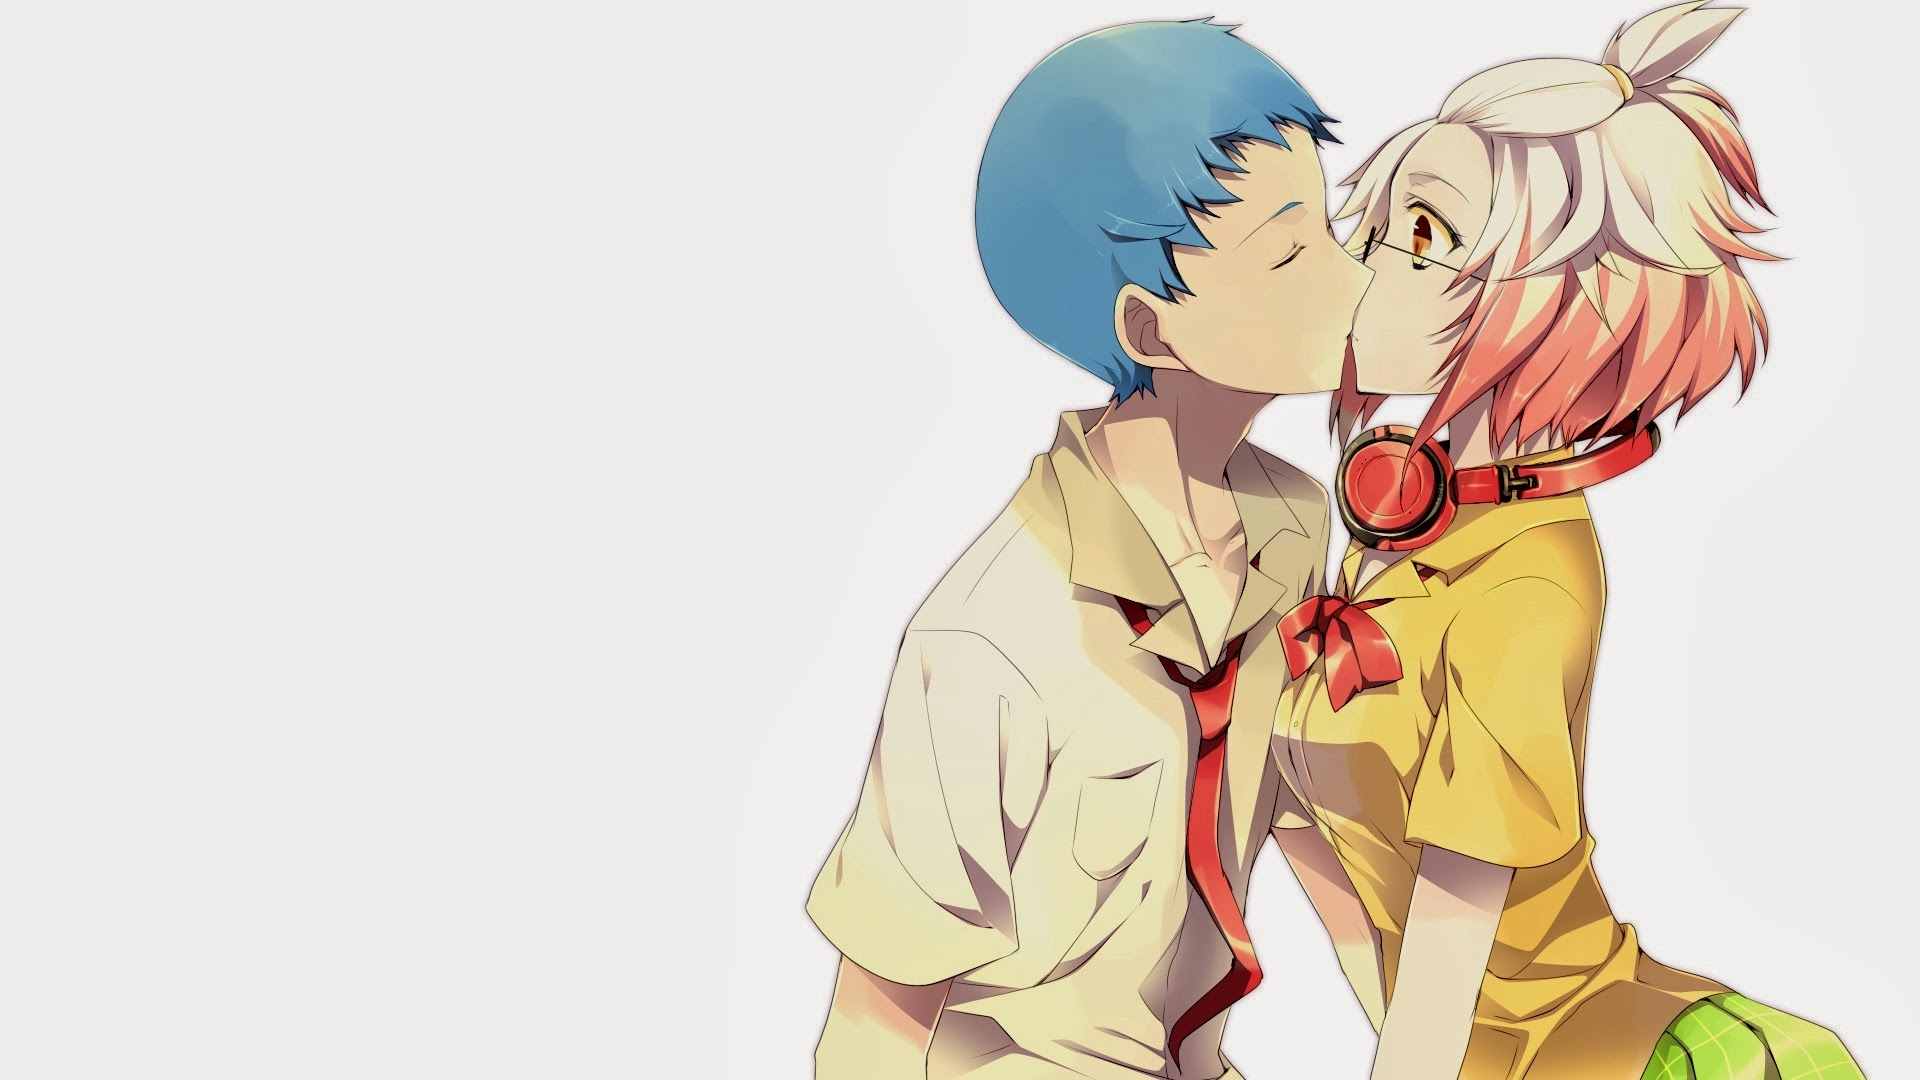 Safari Bedroom Anime Kiss Wallpapers Wallpapersafari